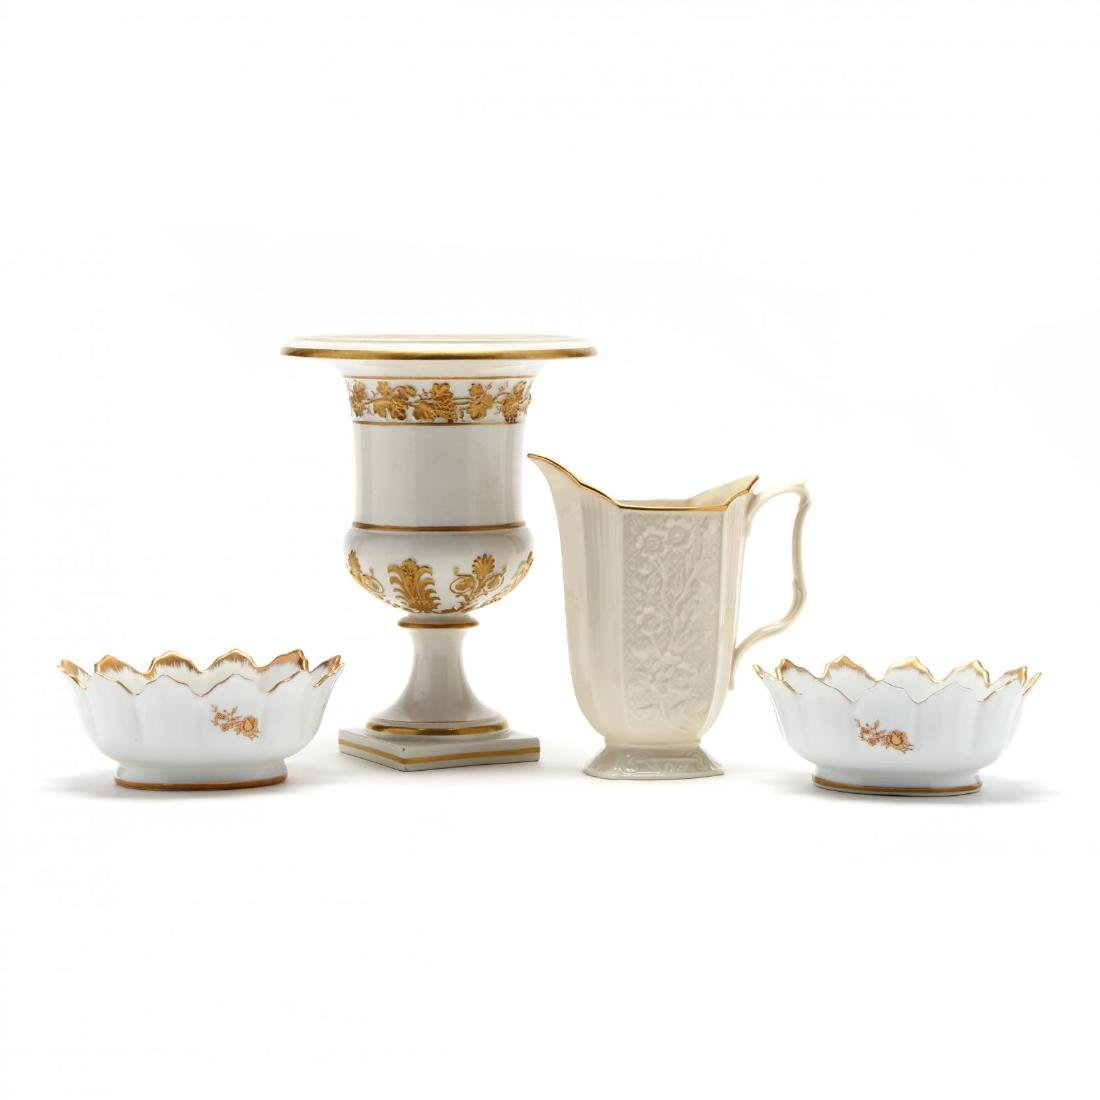 Group of Porcelain Serving Accessories